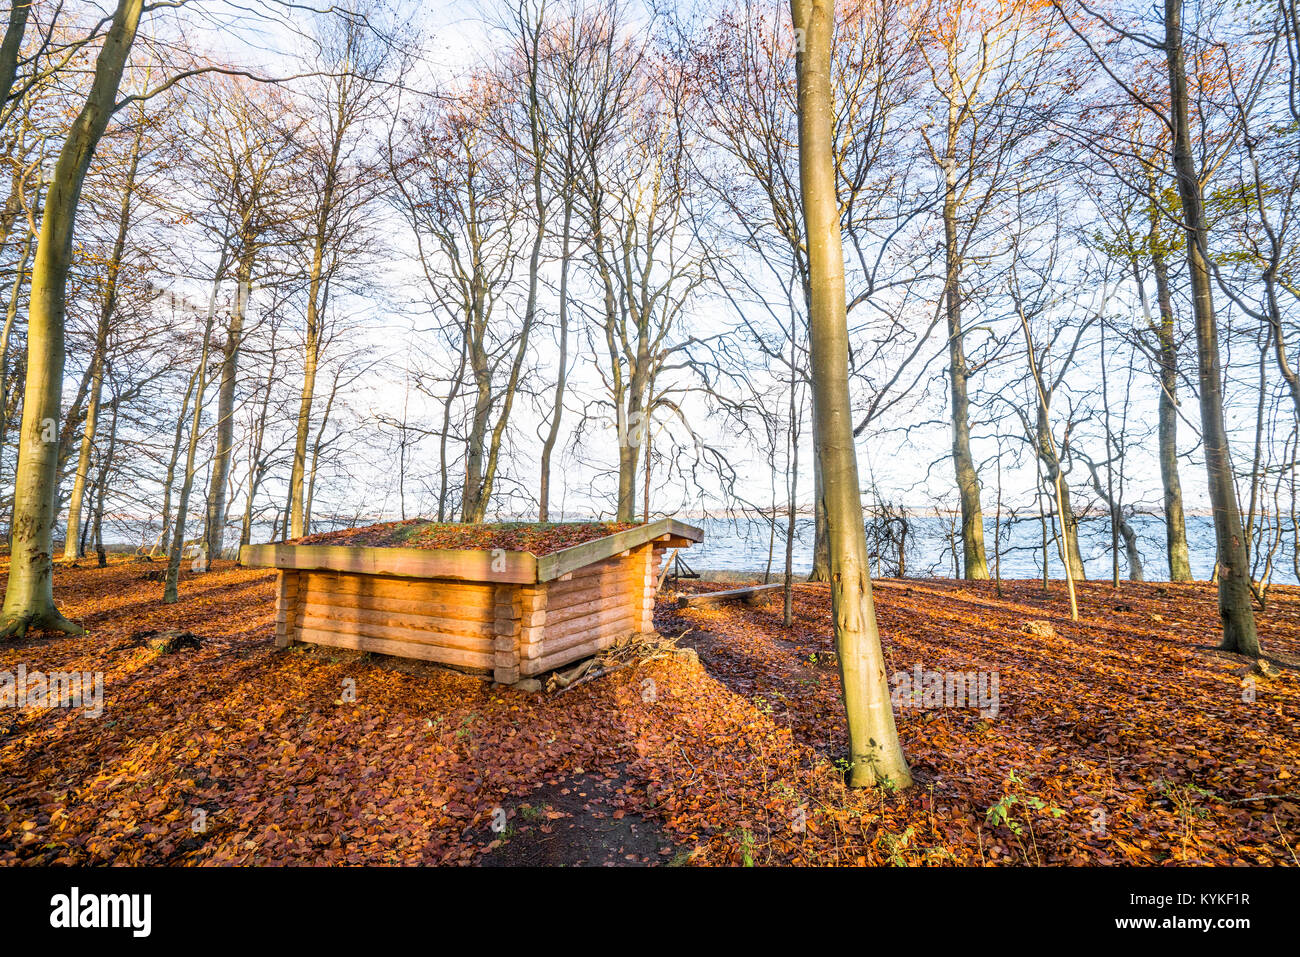 Wooden shelter in a forest with autumn leaves on the ground in the fall - Stock Image